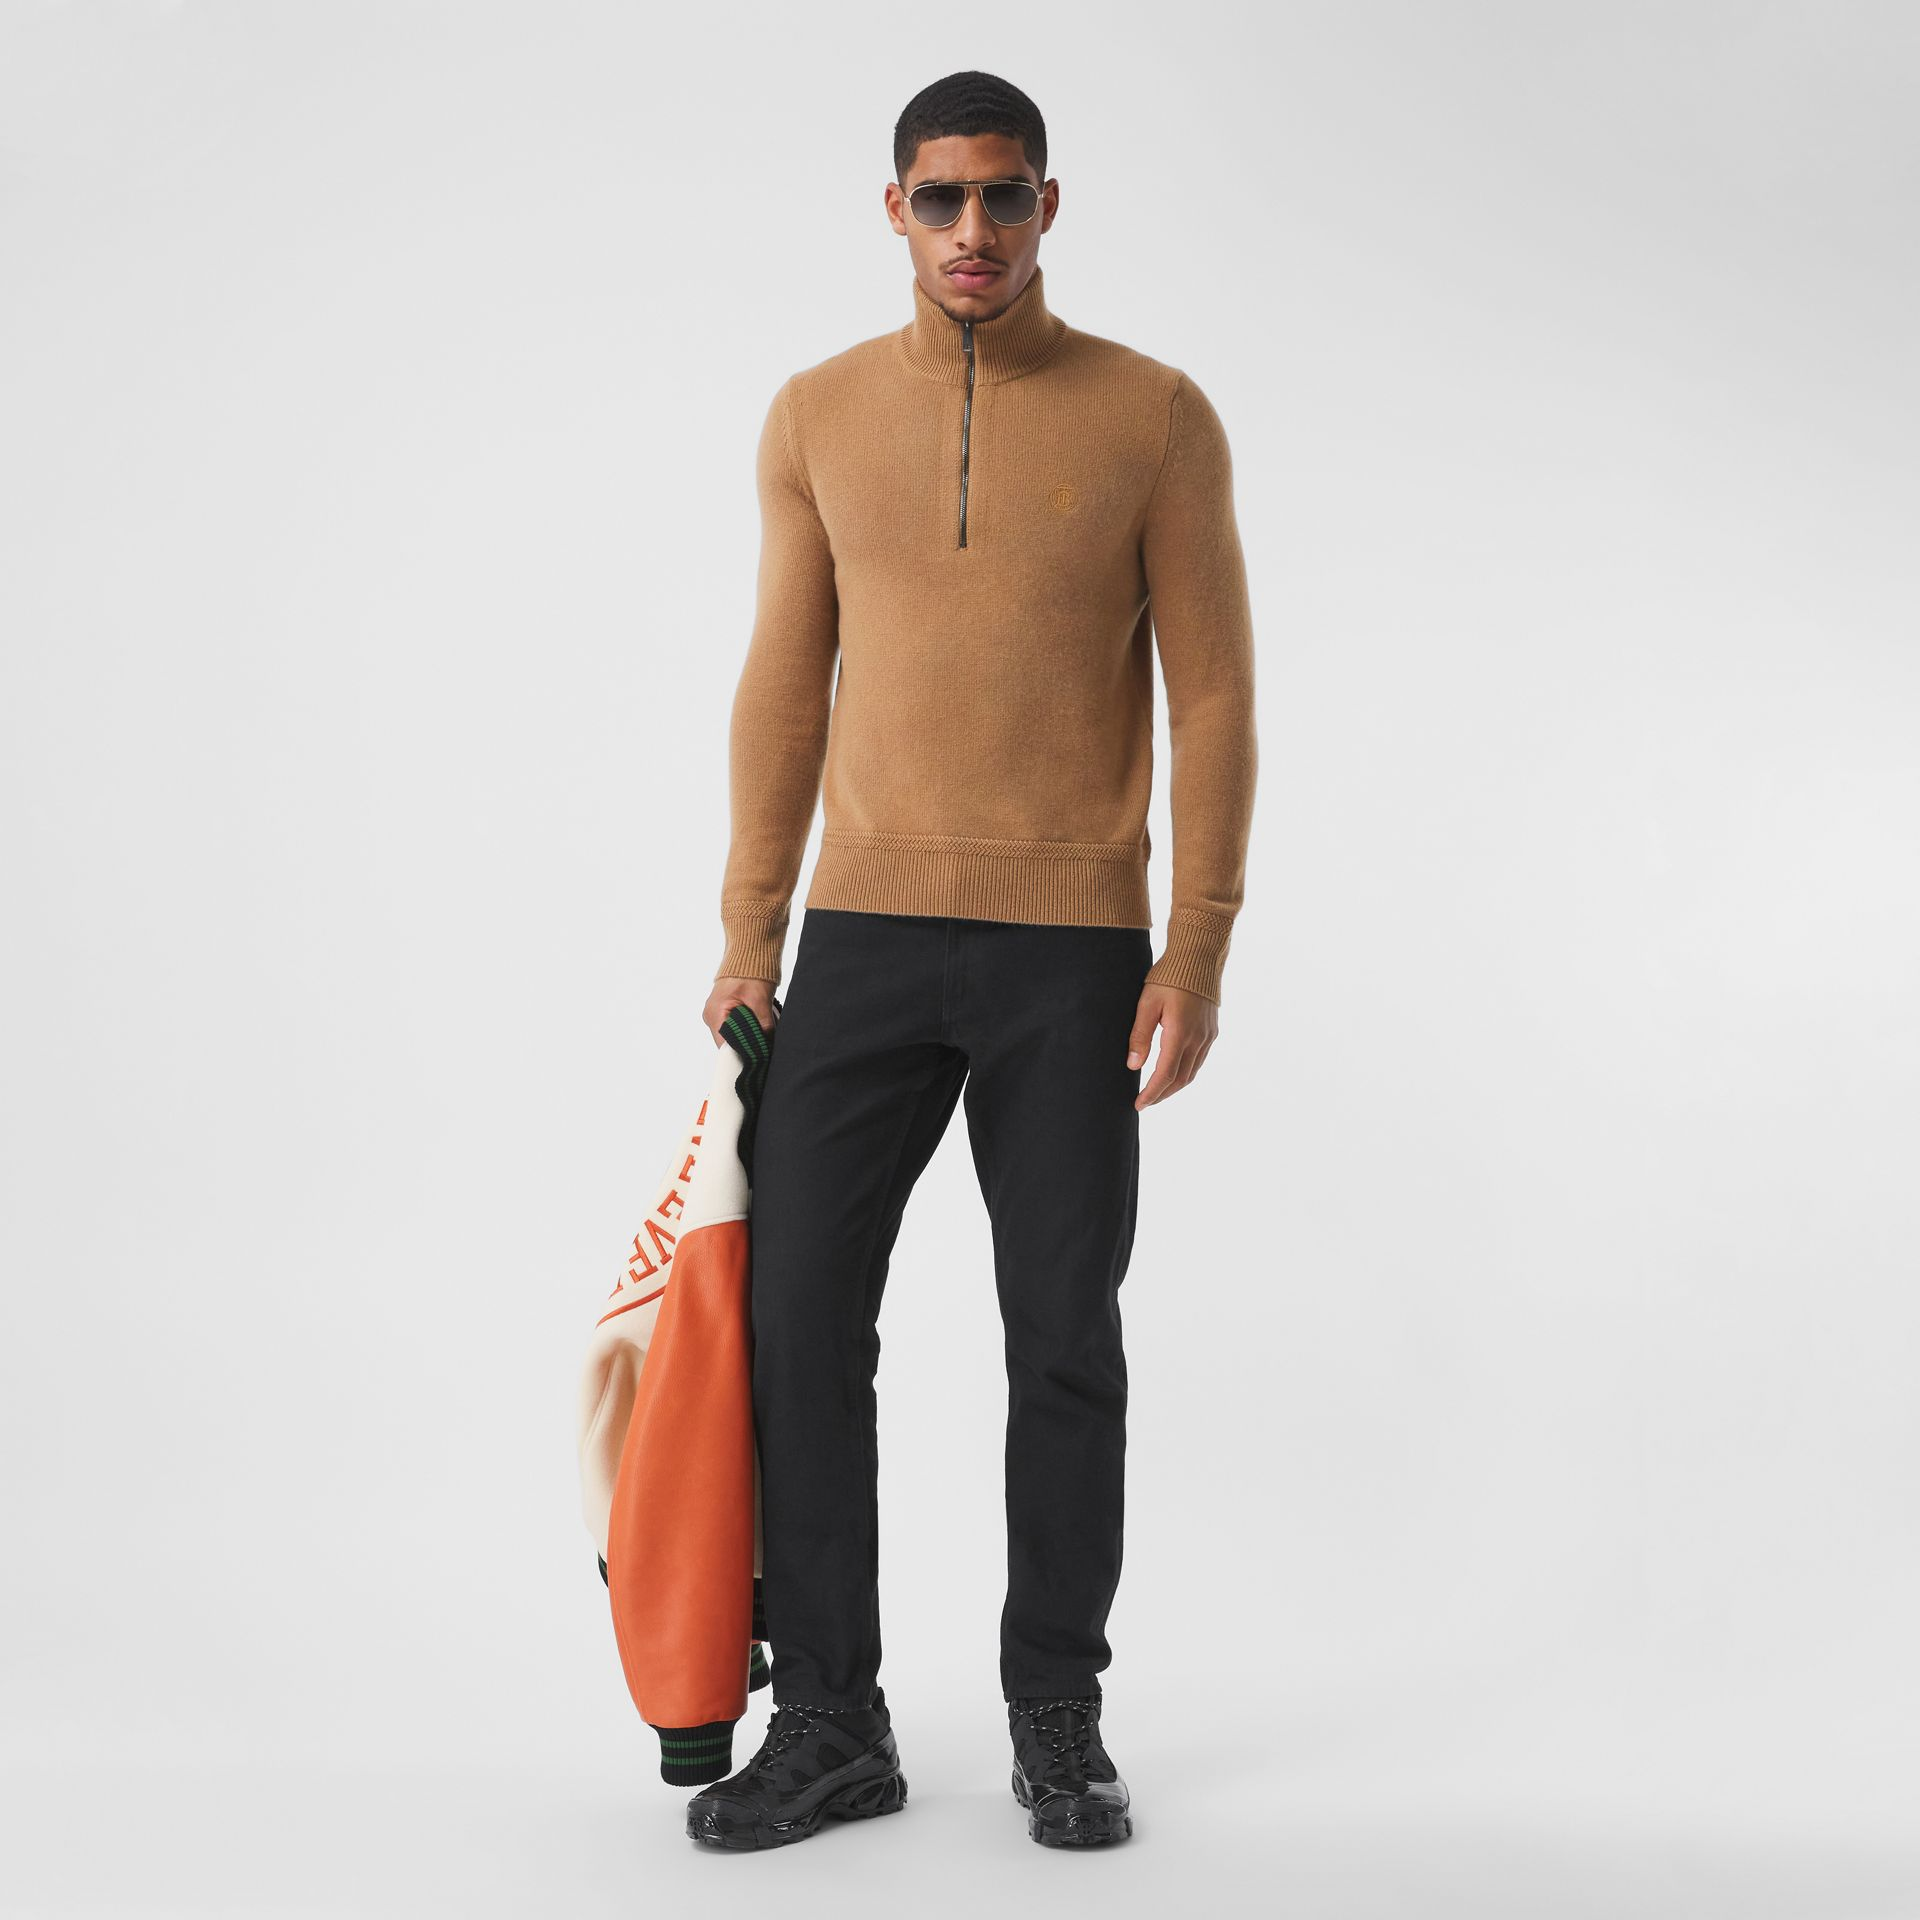 Monogram Motif Cashmere Funnel Neck Sweater in Camel - Men | Burberry - gallery image 5